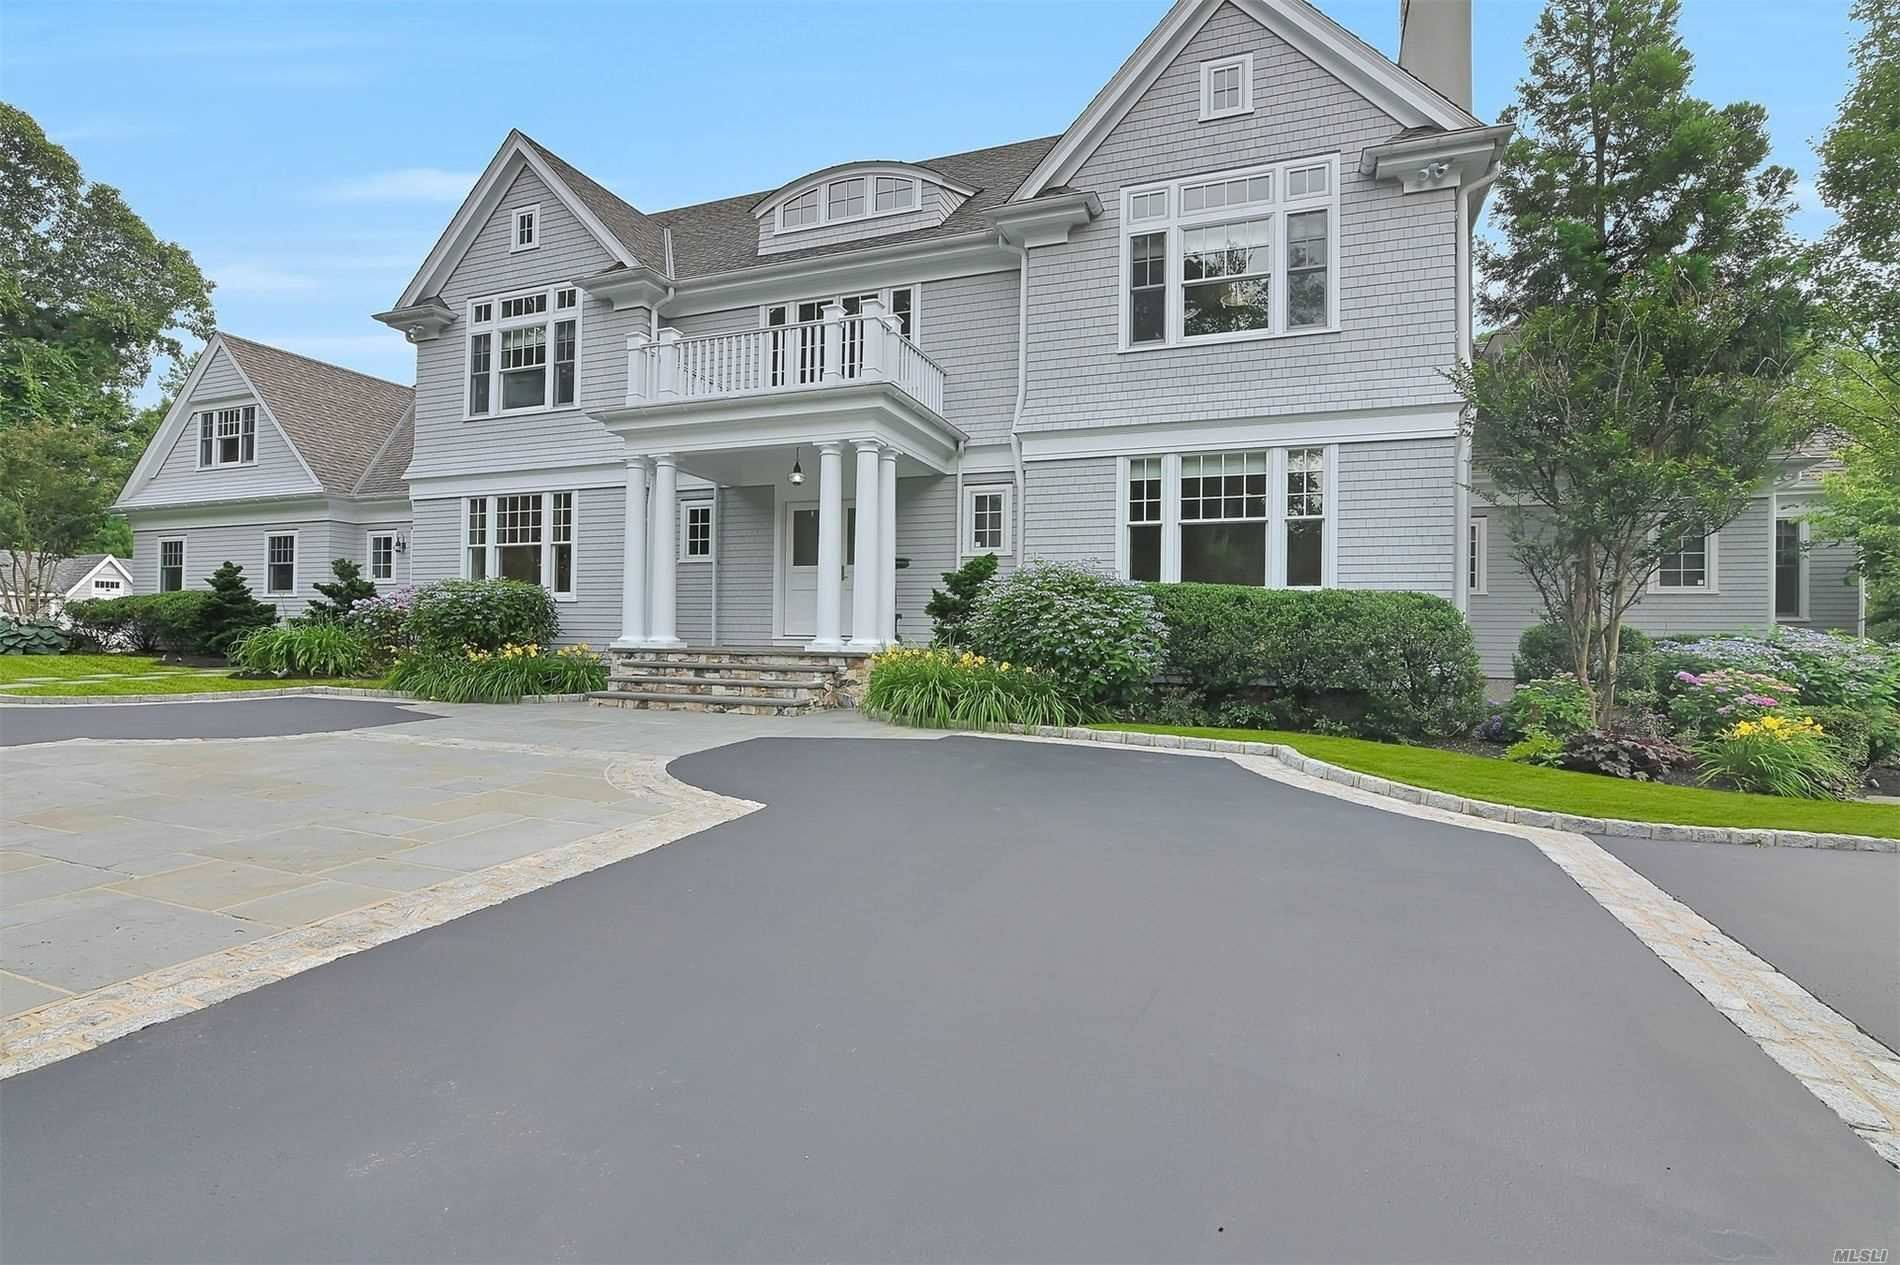 300 Old Orchard Court, Eatons Neck, NY 11768 - MLS#: 3231903